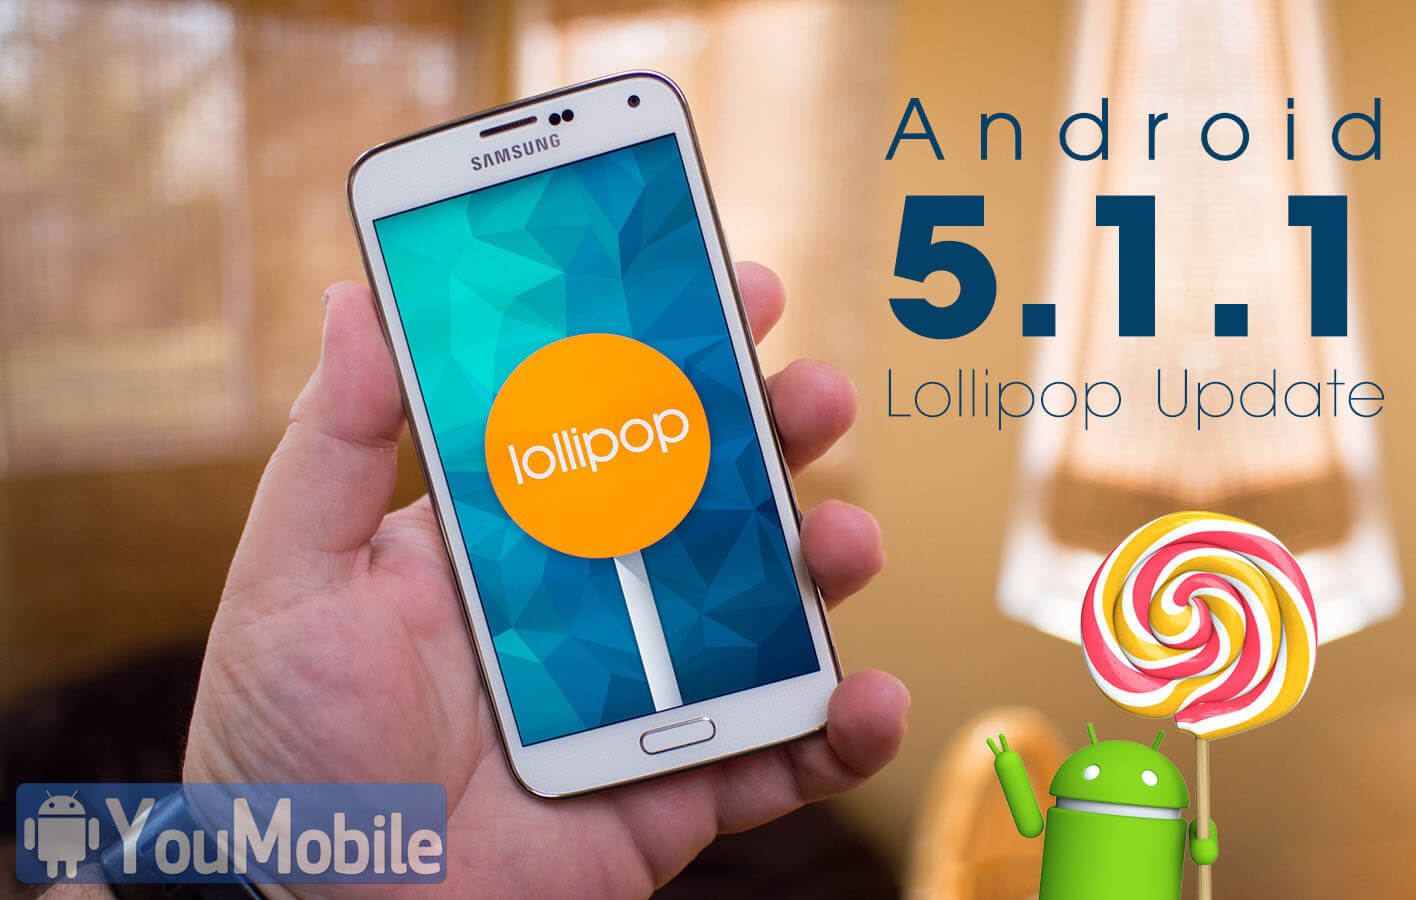 Galaxy S5 Lollipop 5.1.1